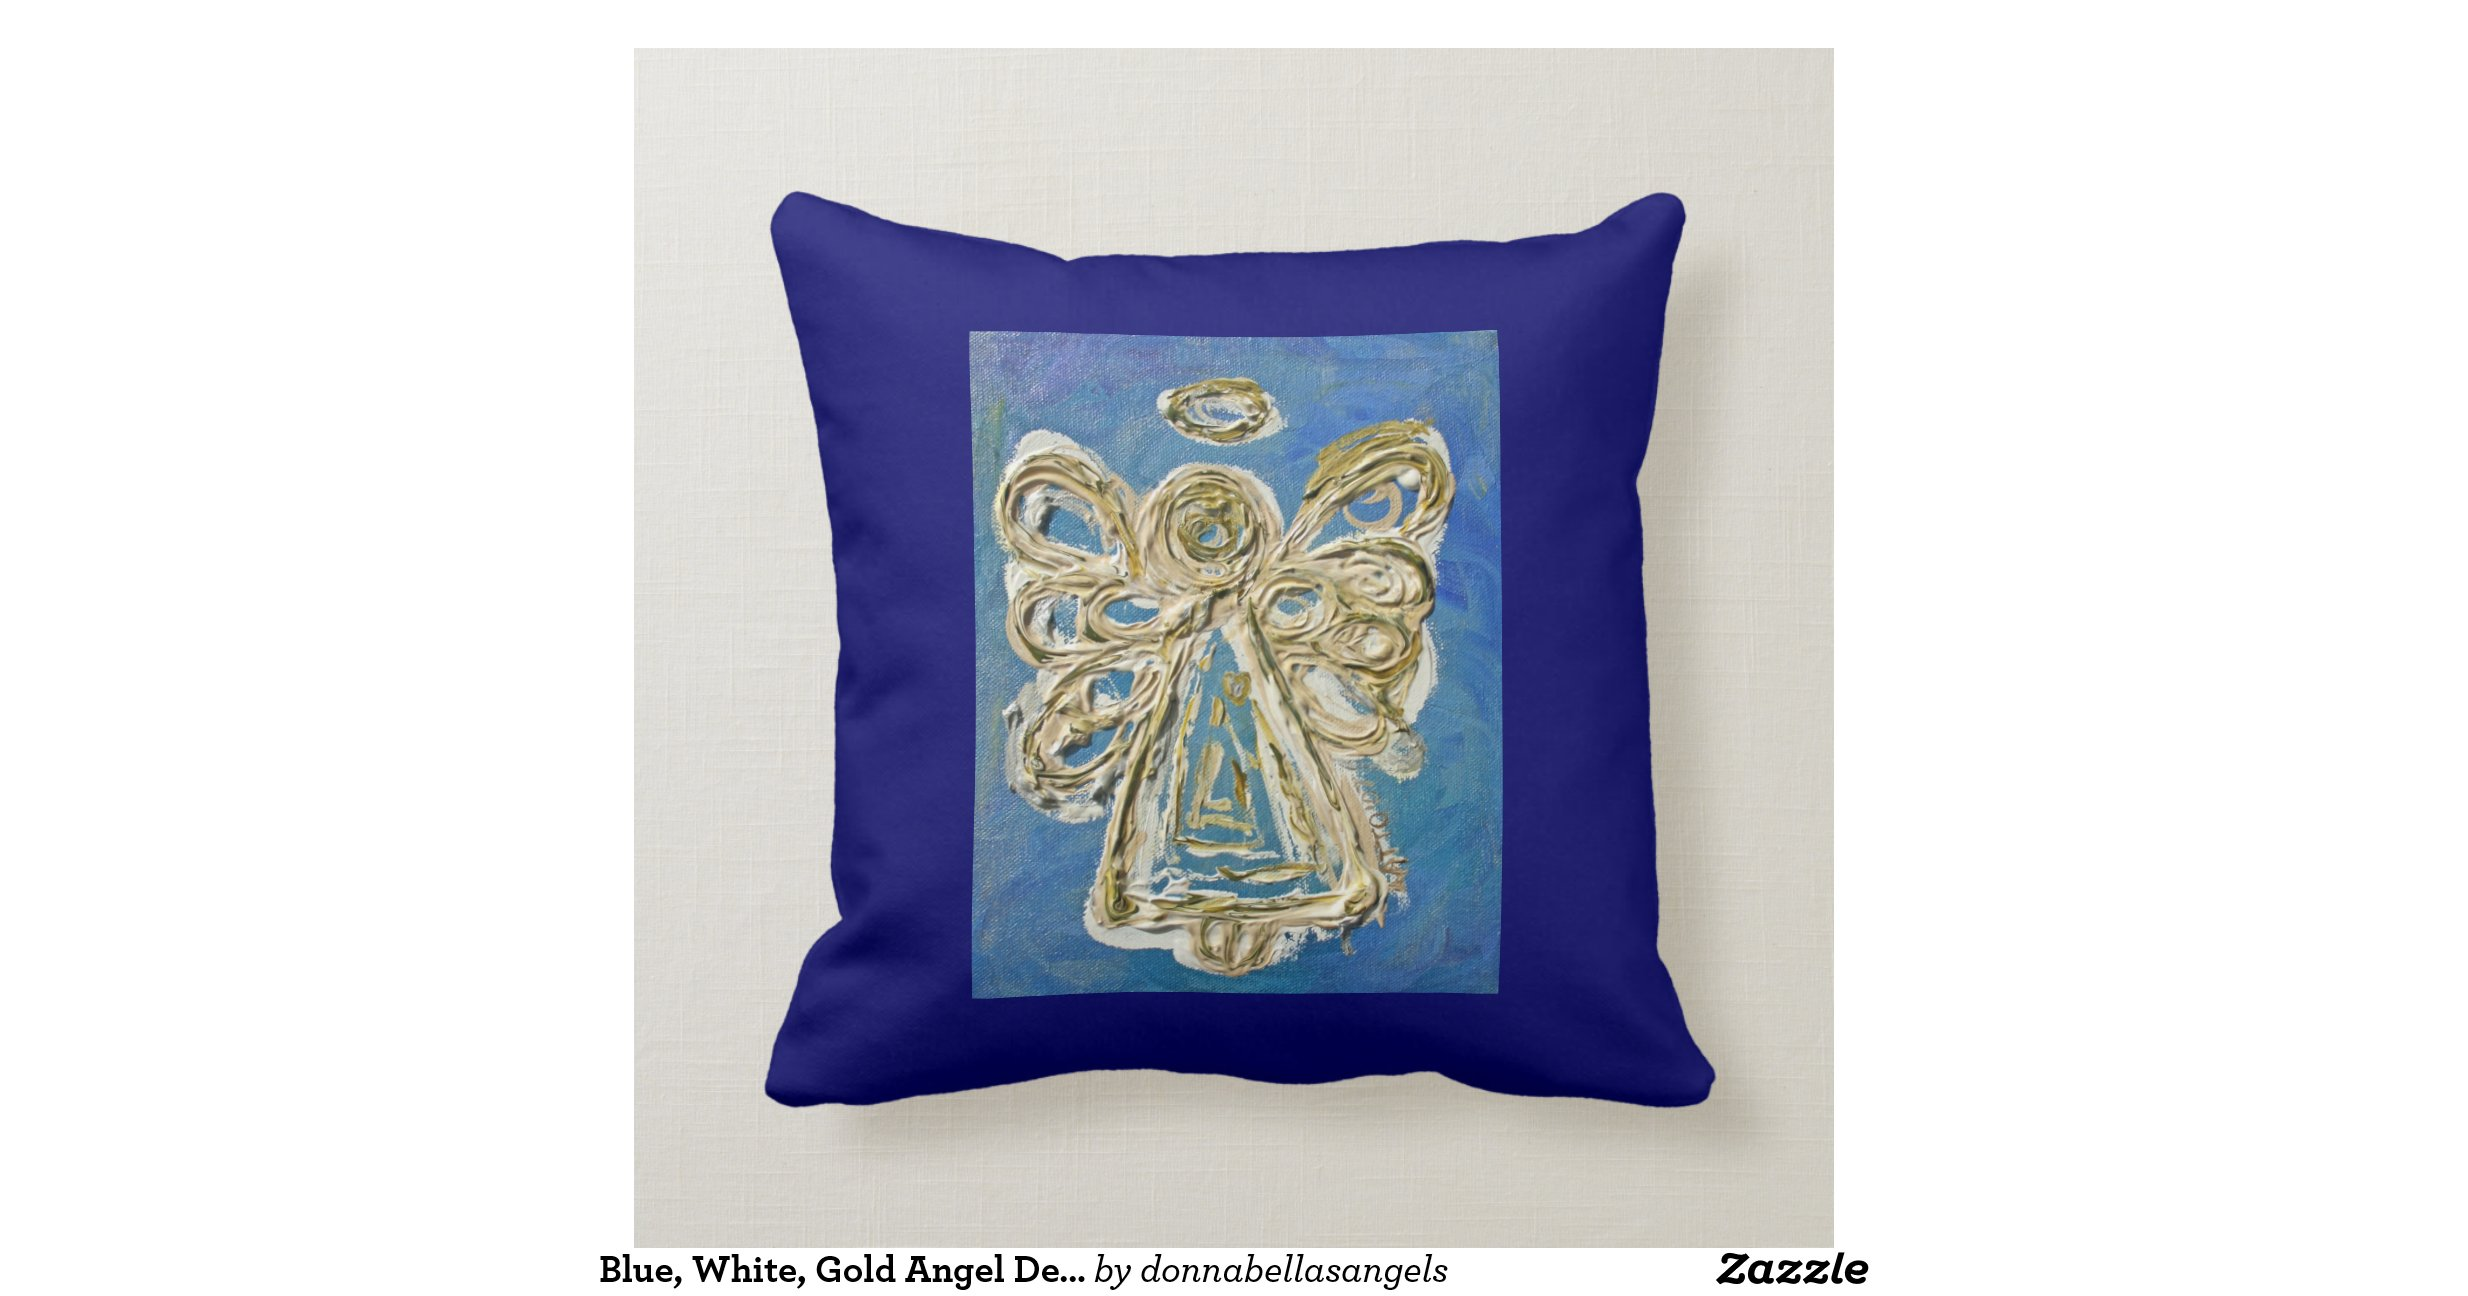 Blue, White, Gold Angel Decorative Throw Pillow Cushions Zazzle